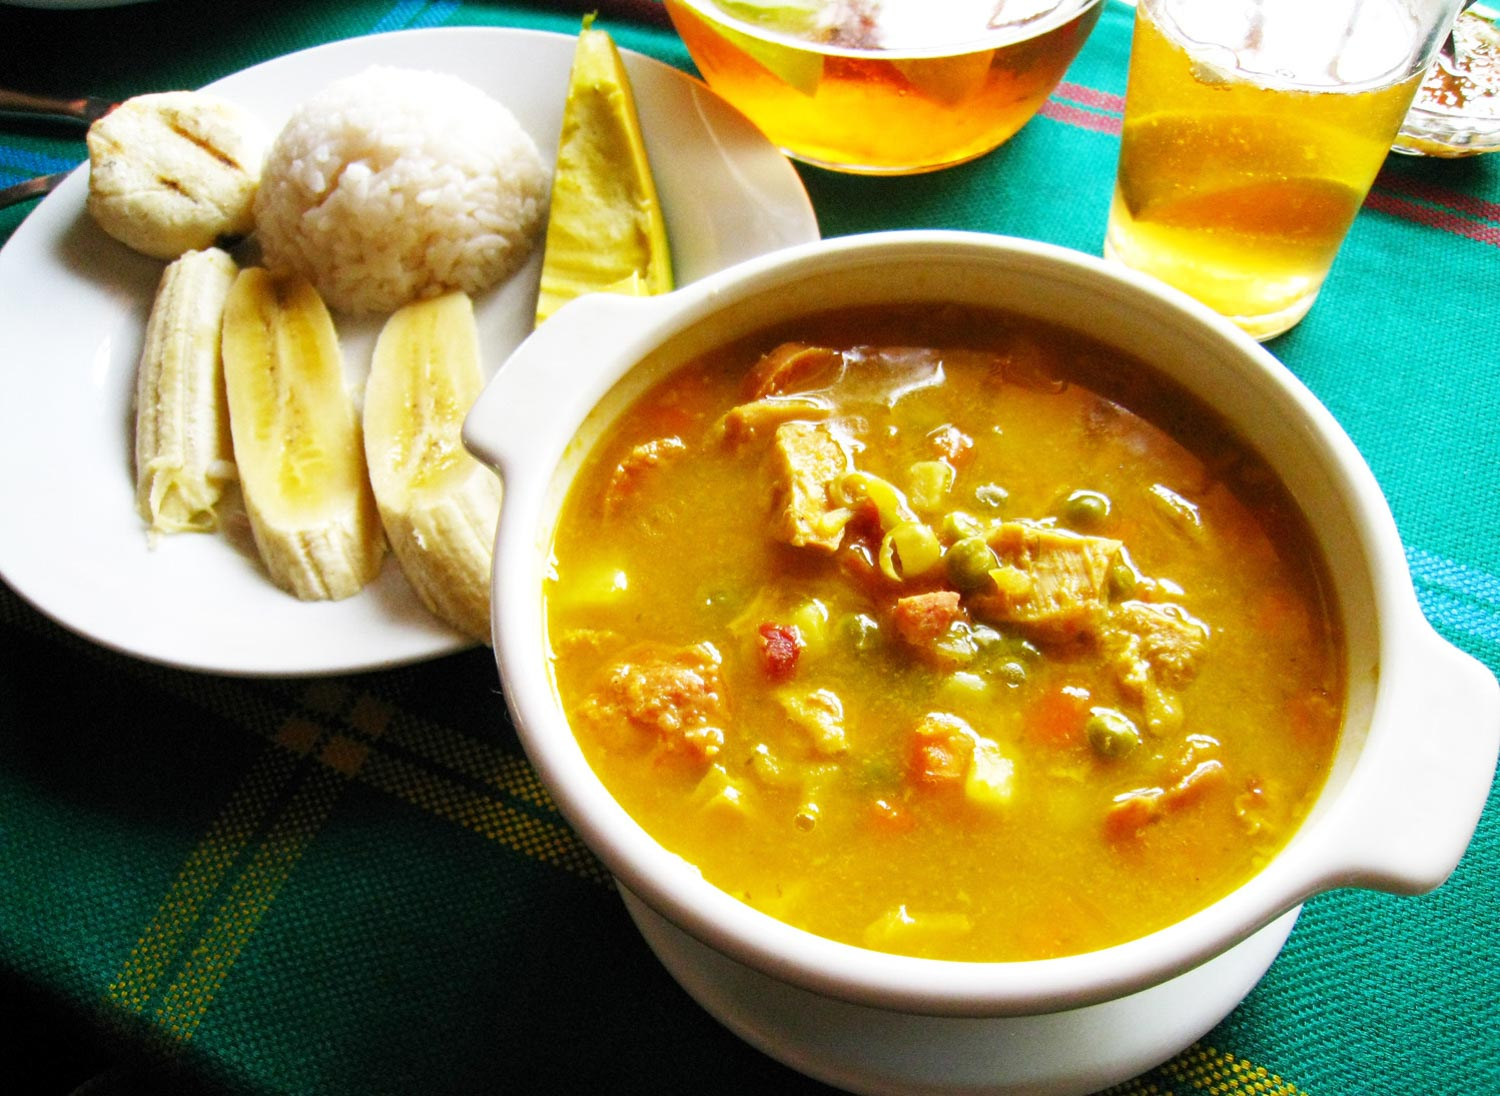 Mondongo is a Honduran food known as tripe soup that is a traditional food in Honduras.